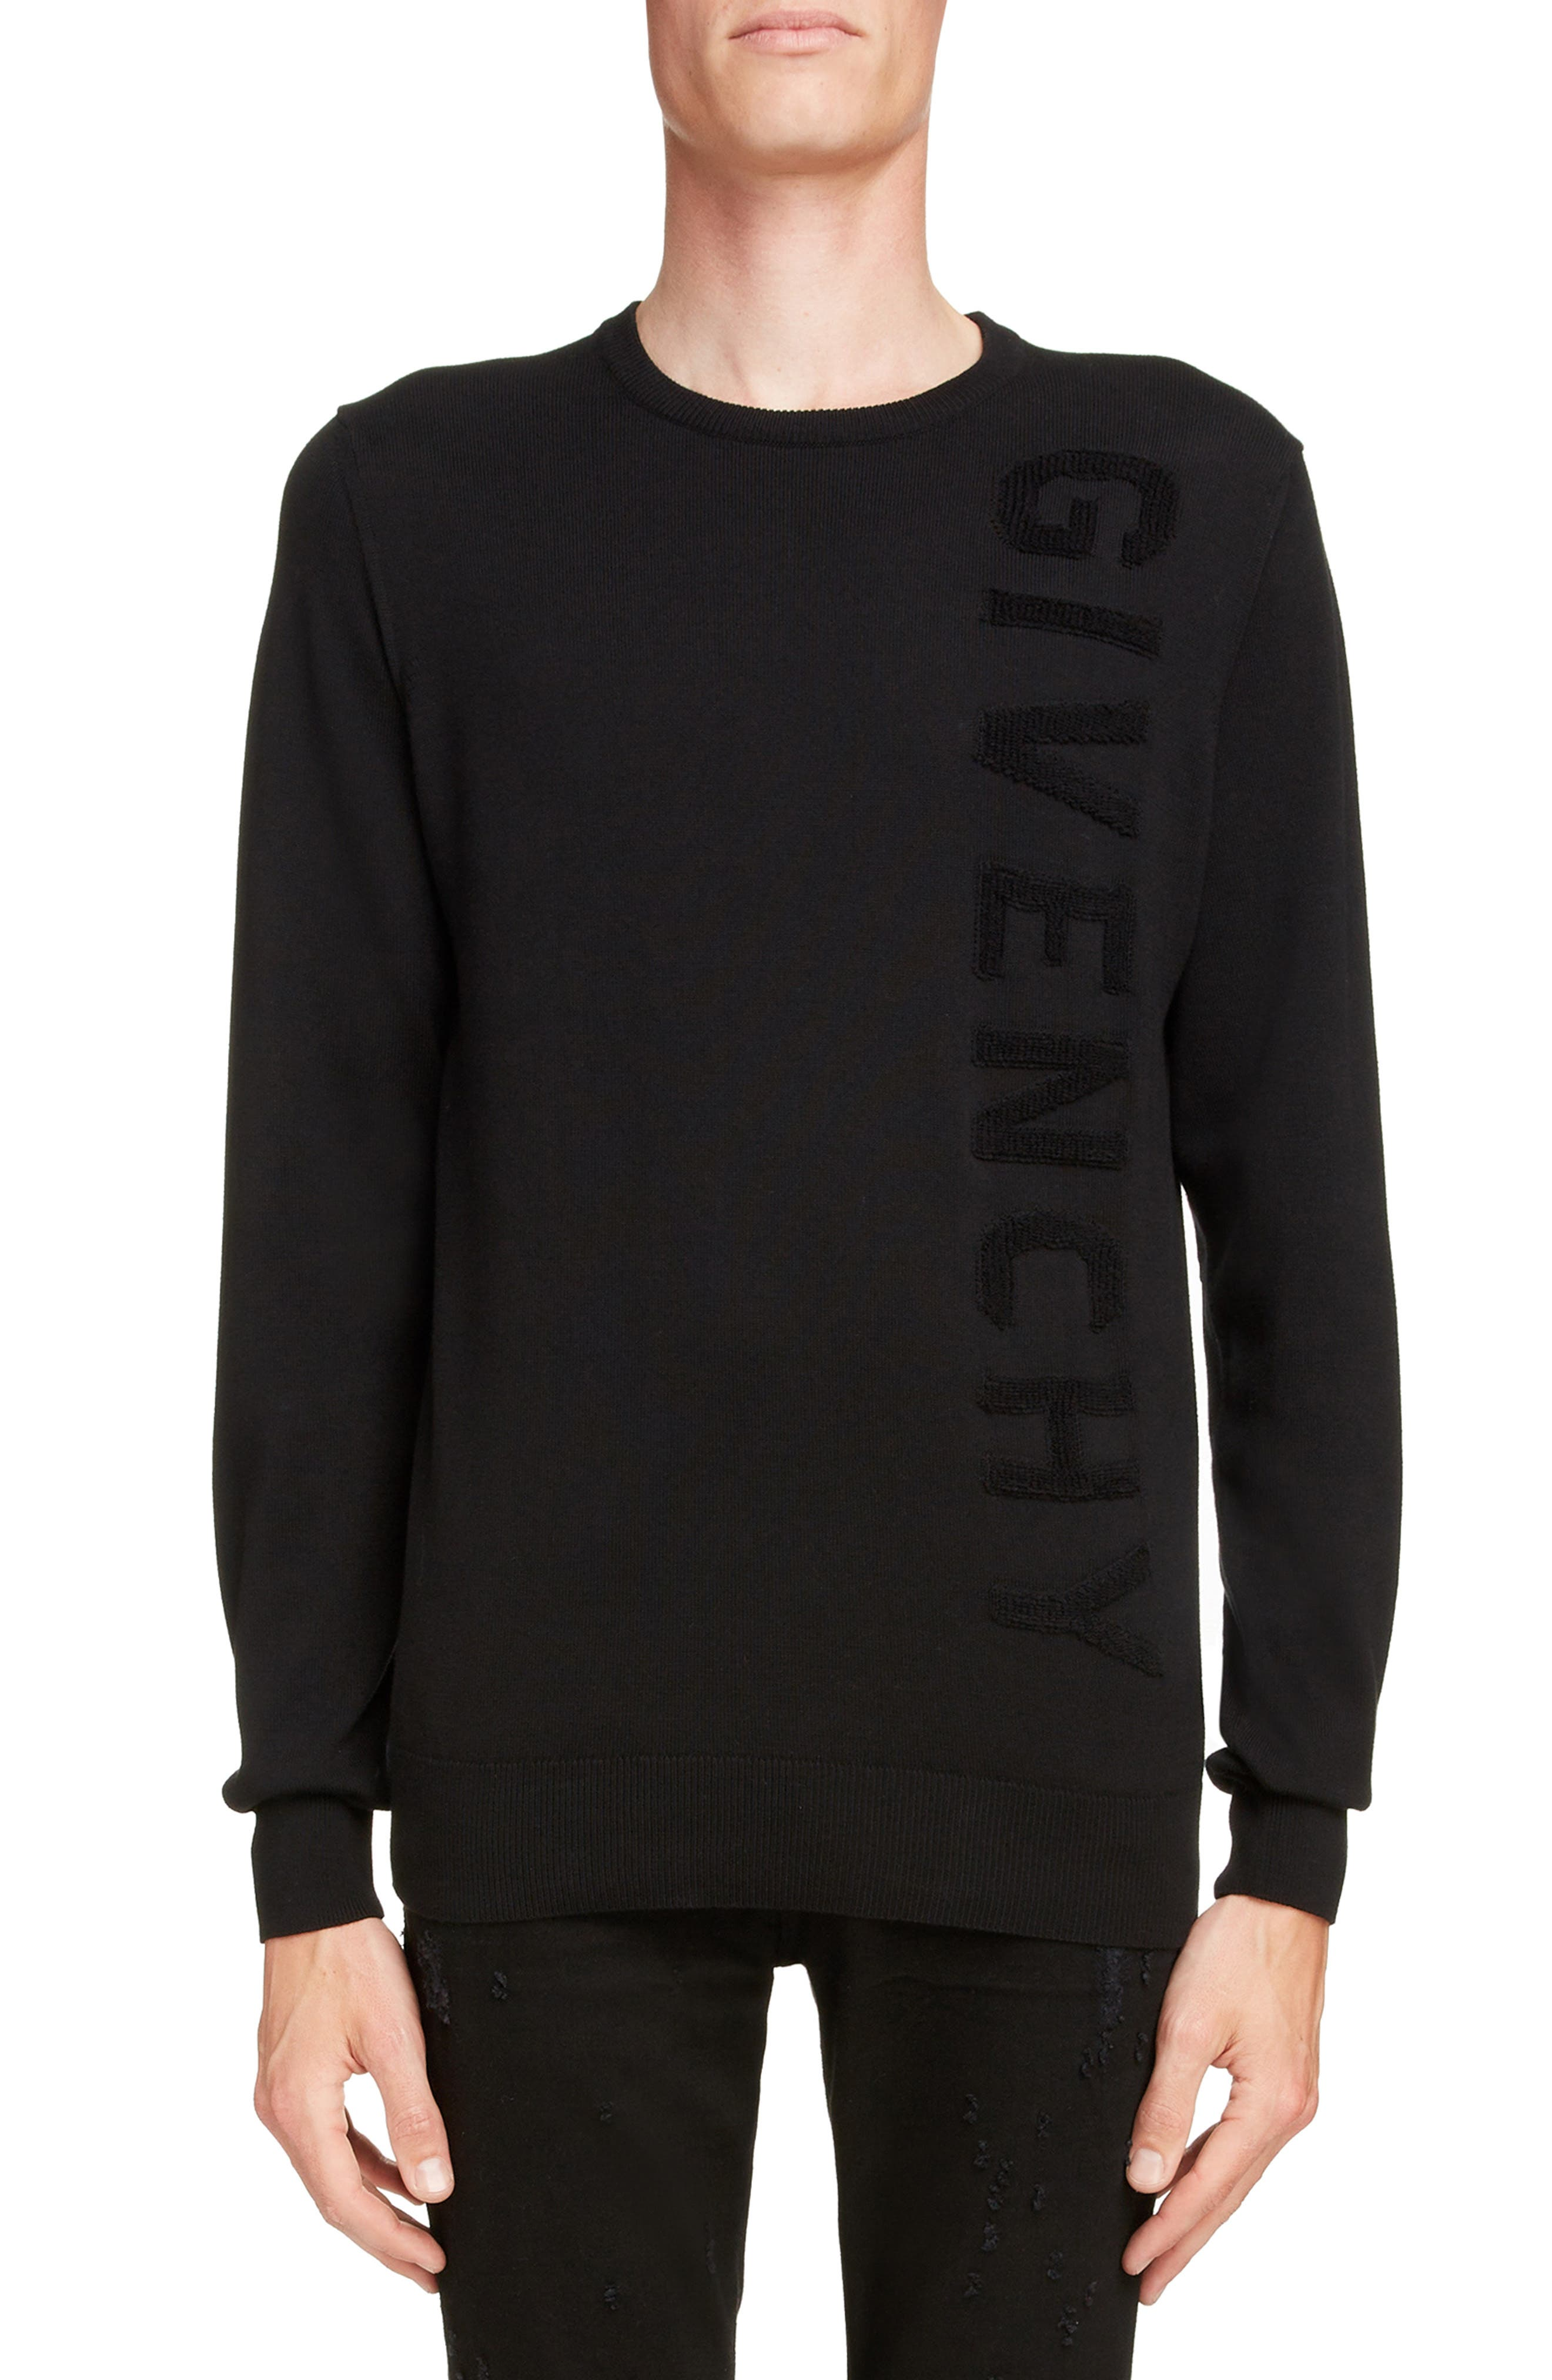 GIVENCHY Tonal Vertical Logo Sweater, Main, color, BLACK